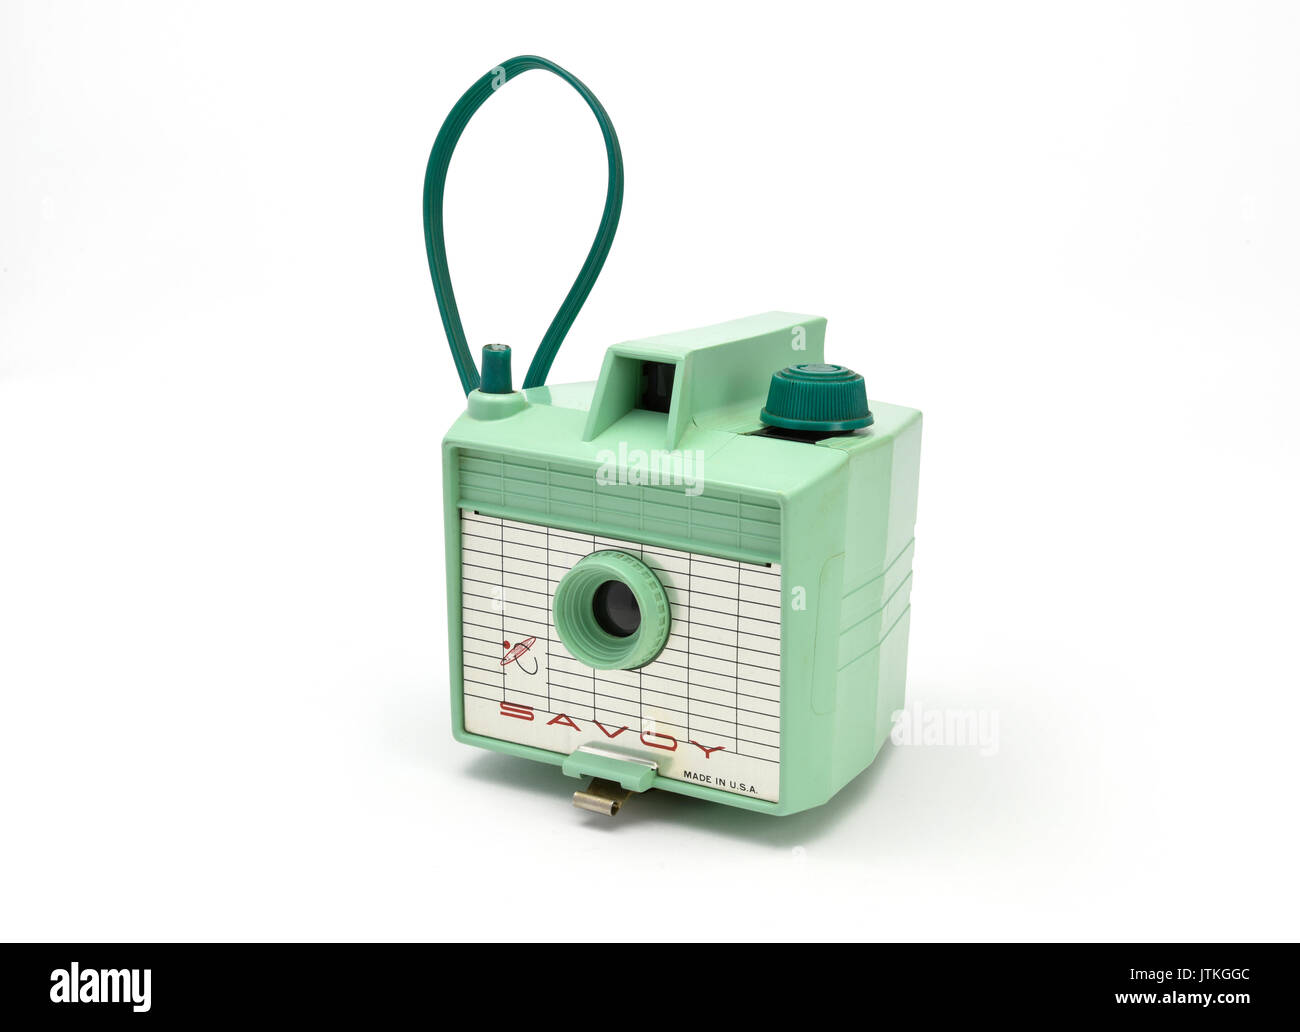 Vintage Green Savoy plastic Film Camera from the 1960's - Stock Image